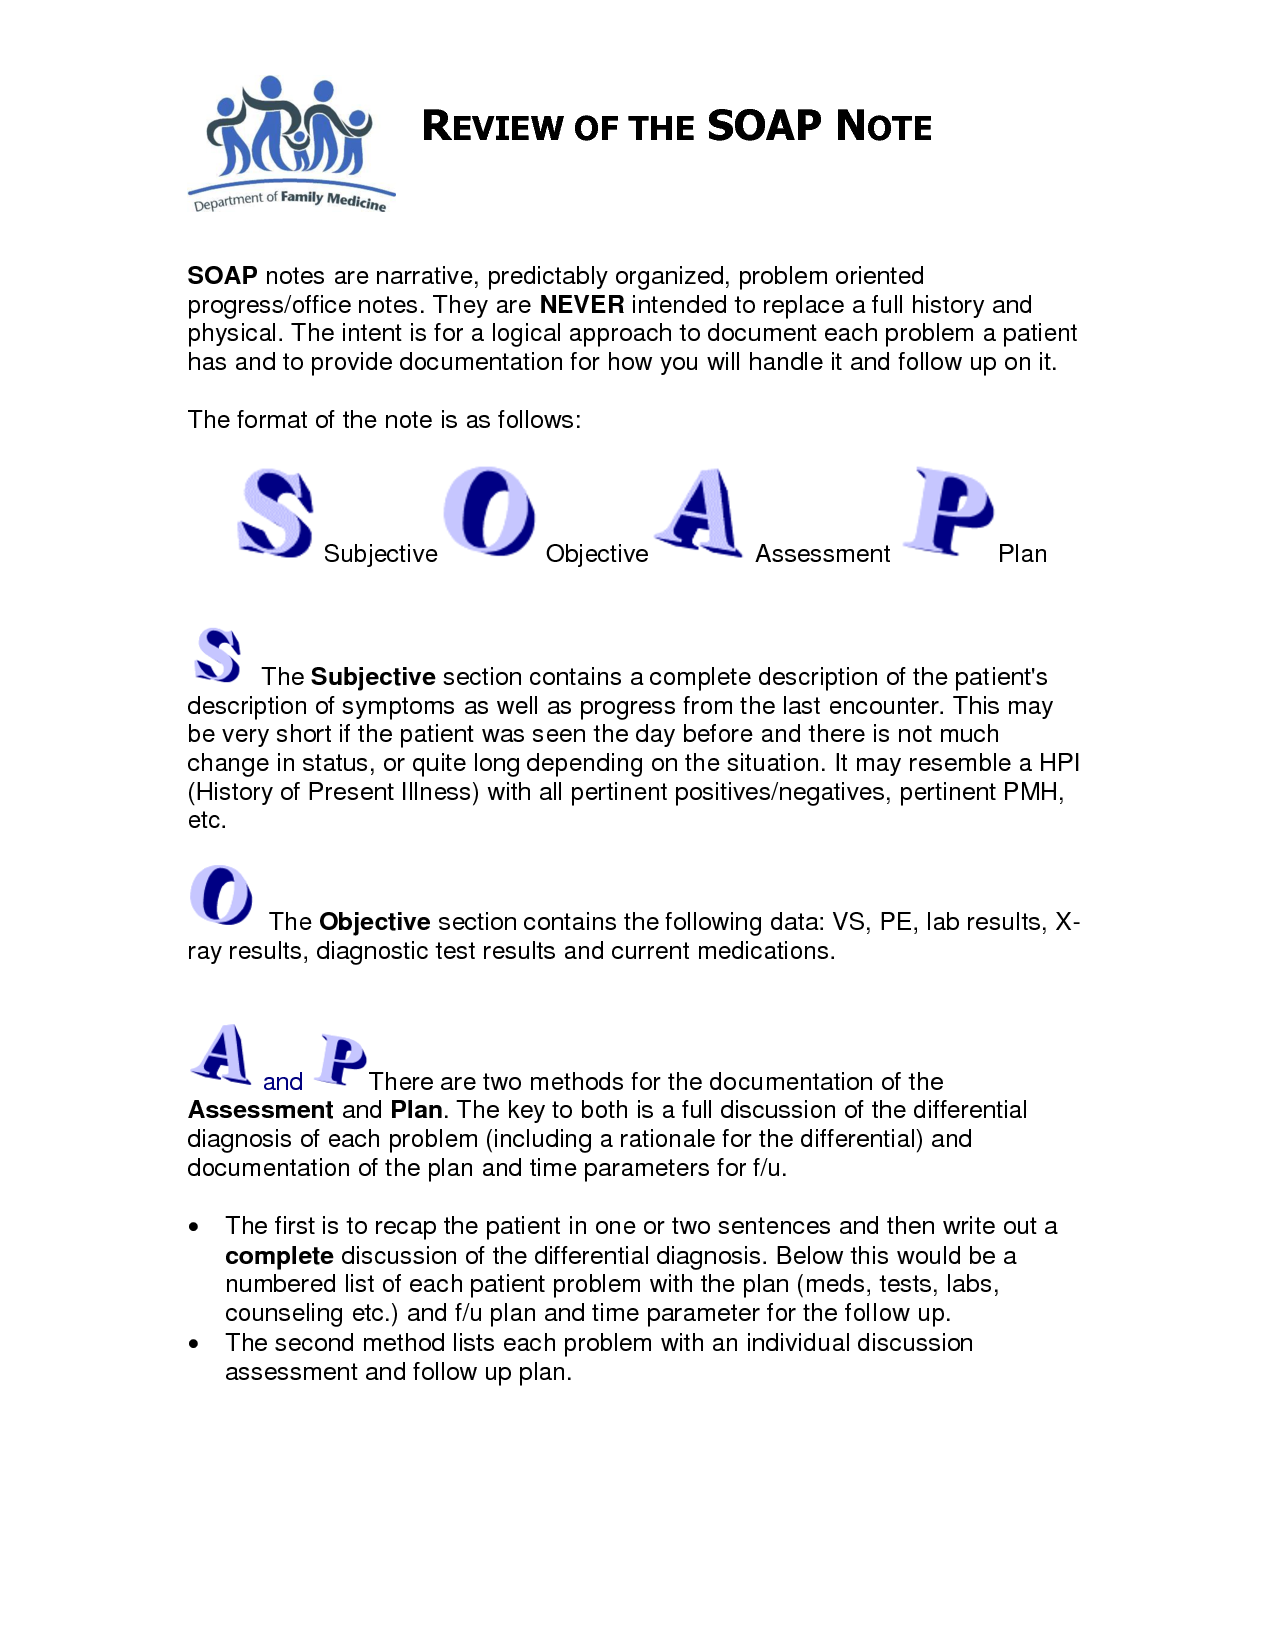 soap notes mental health template - soap note template counseling google search soap notes